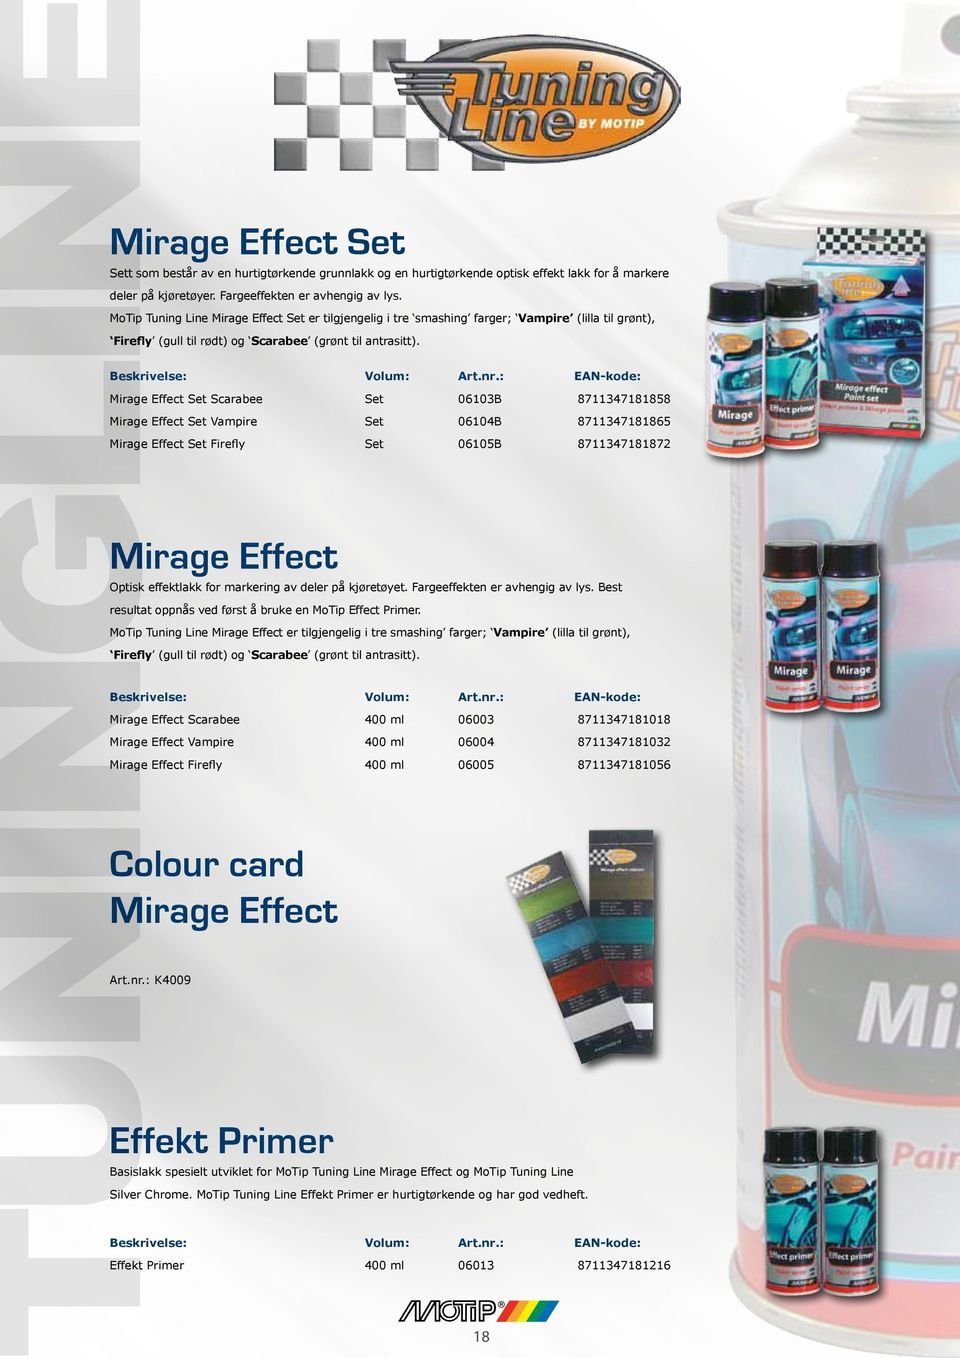 Mirage Effect Set Scarabee Set 06103B 8711347181858 Mirage Effect Set Vampire Set 06104B 8711347181865 Mirage Effect Set Firefly Set 06105B 8711347181872 Mirage Effect Optisk effektlakk for markering